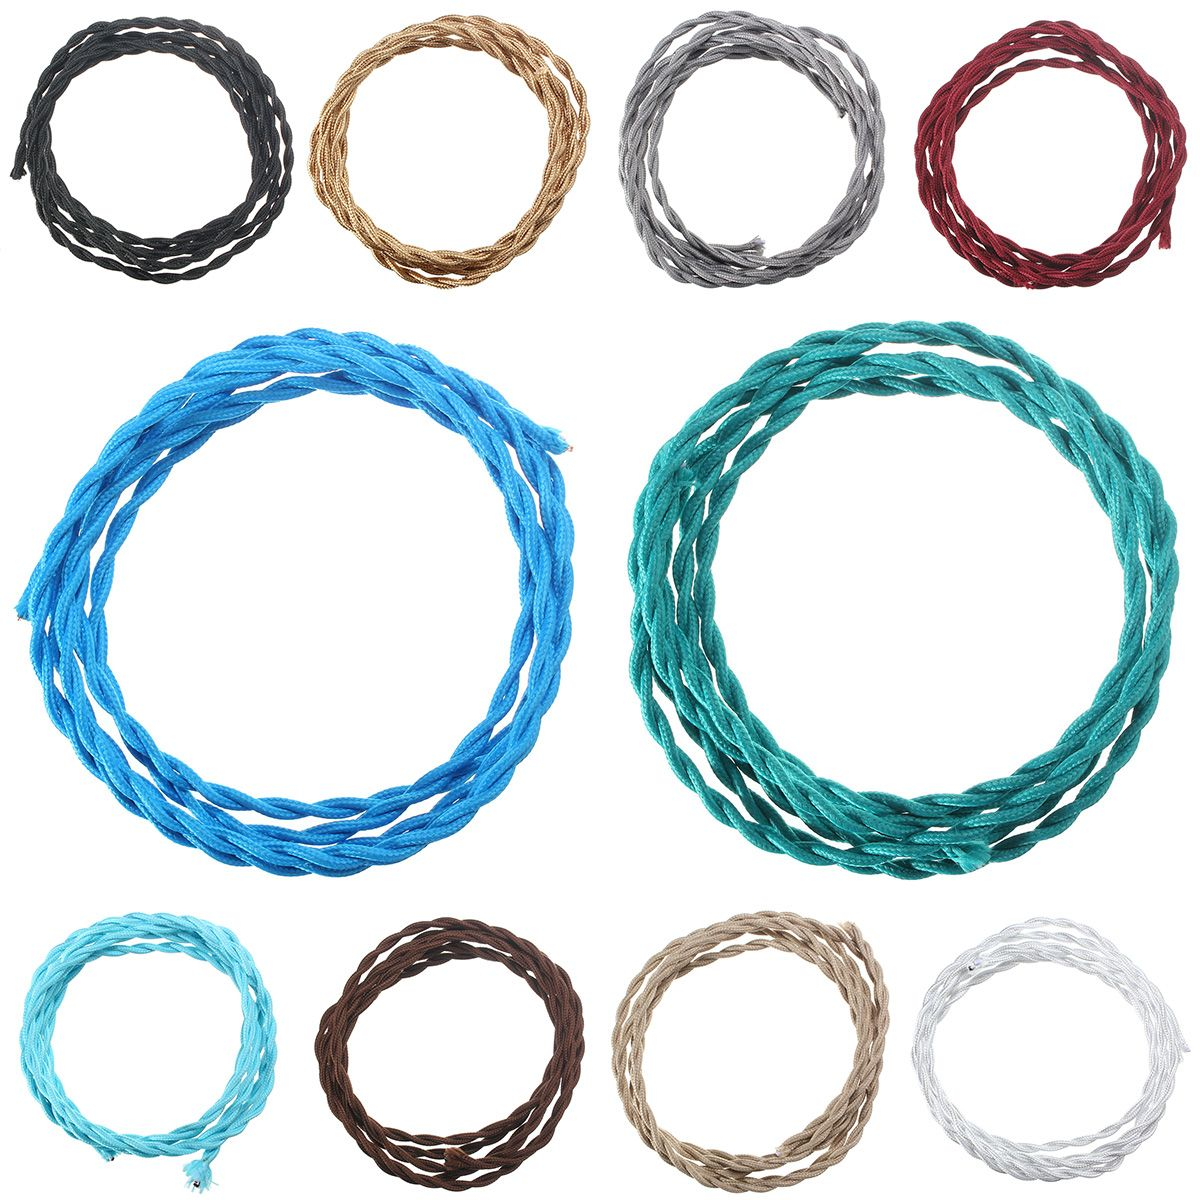 3M Vintage 2 Core Twist Braided Fabric Cable Wire Electric Lighting ...